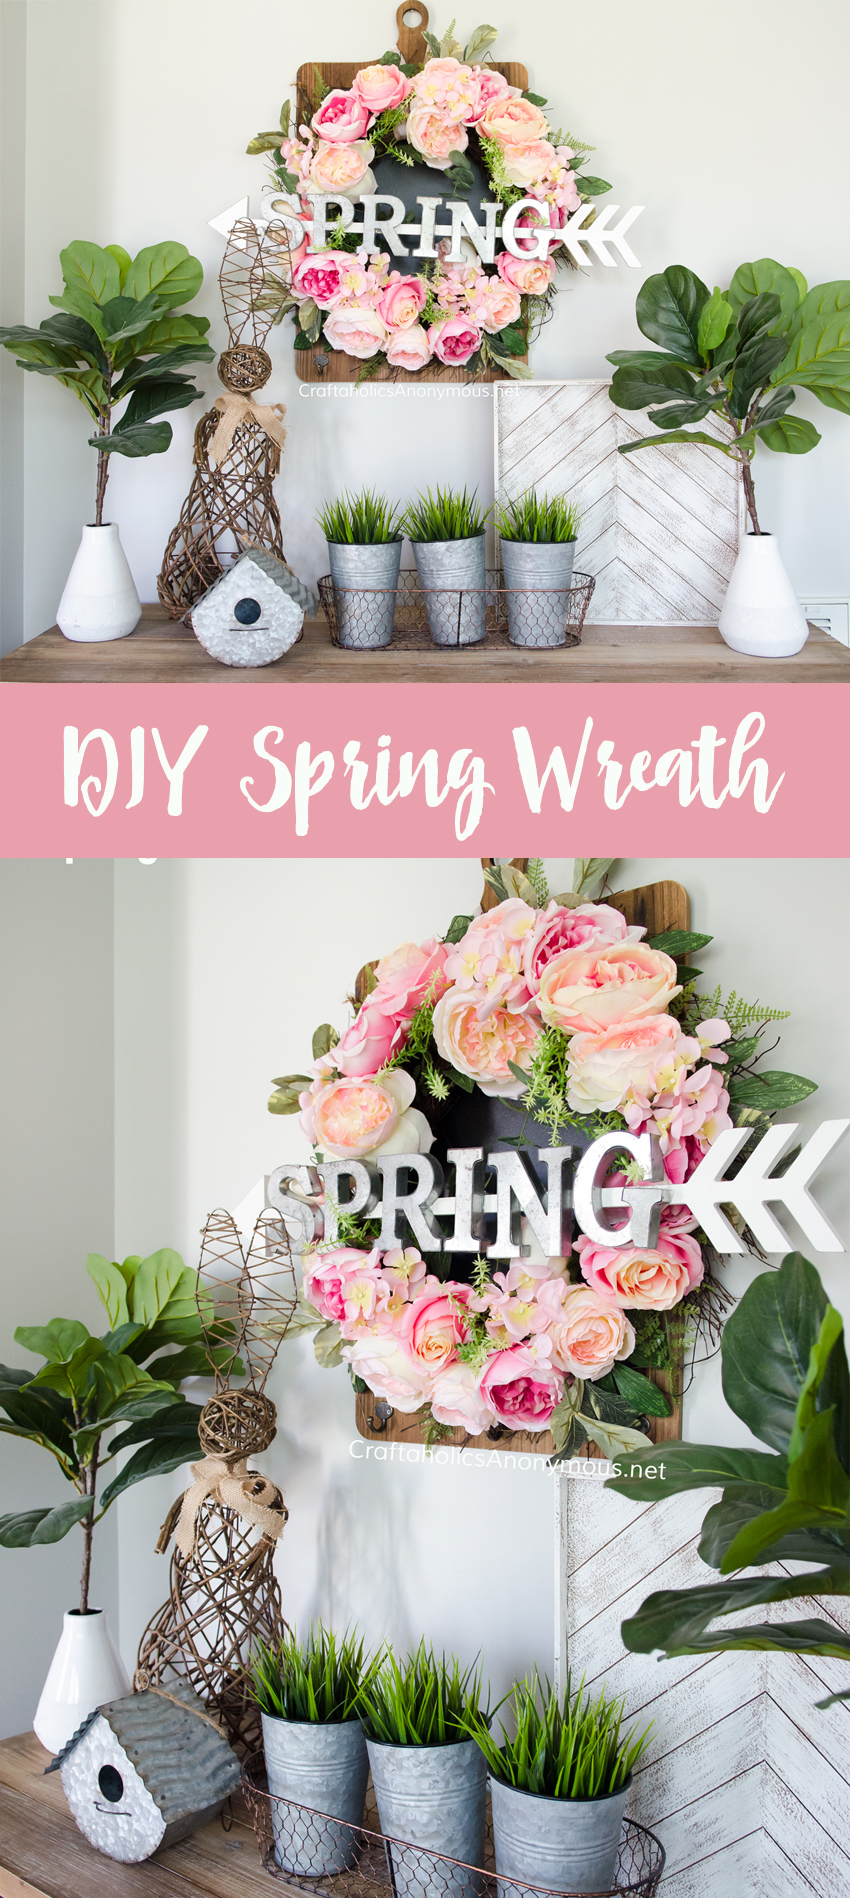 DIY Spring Wreath and Spring Decor vignette